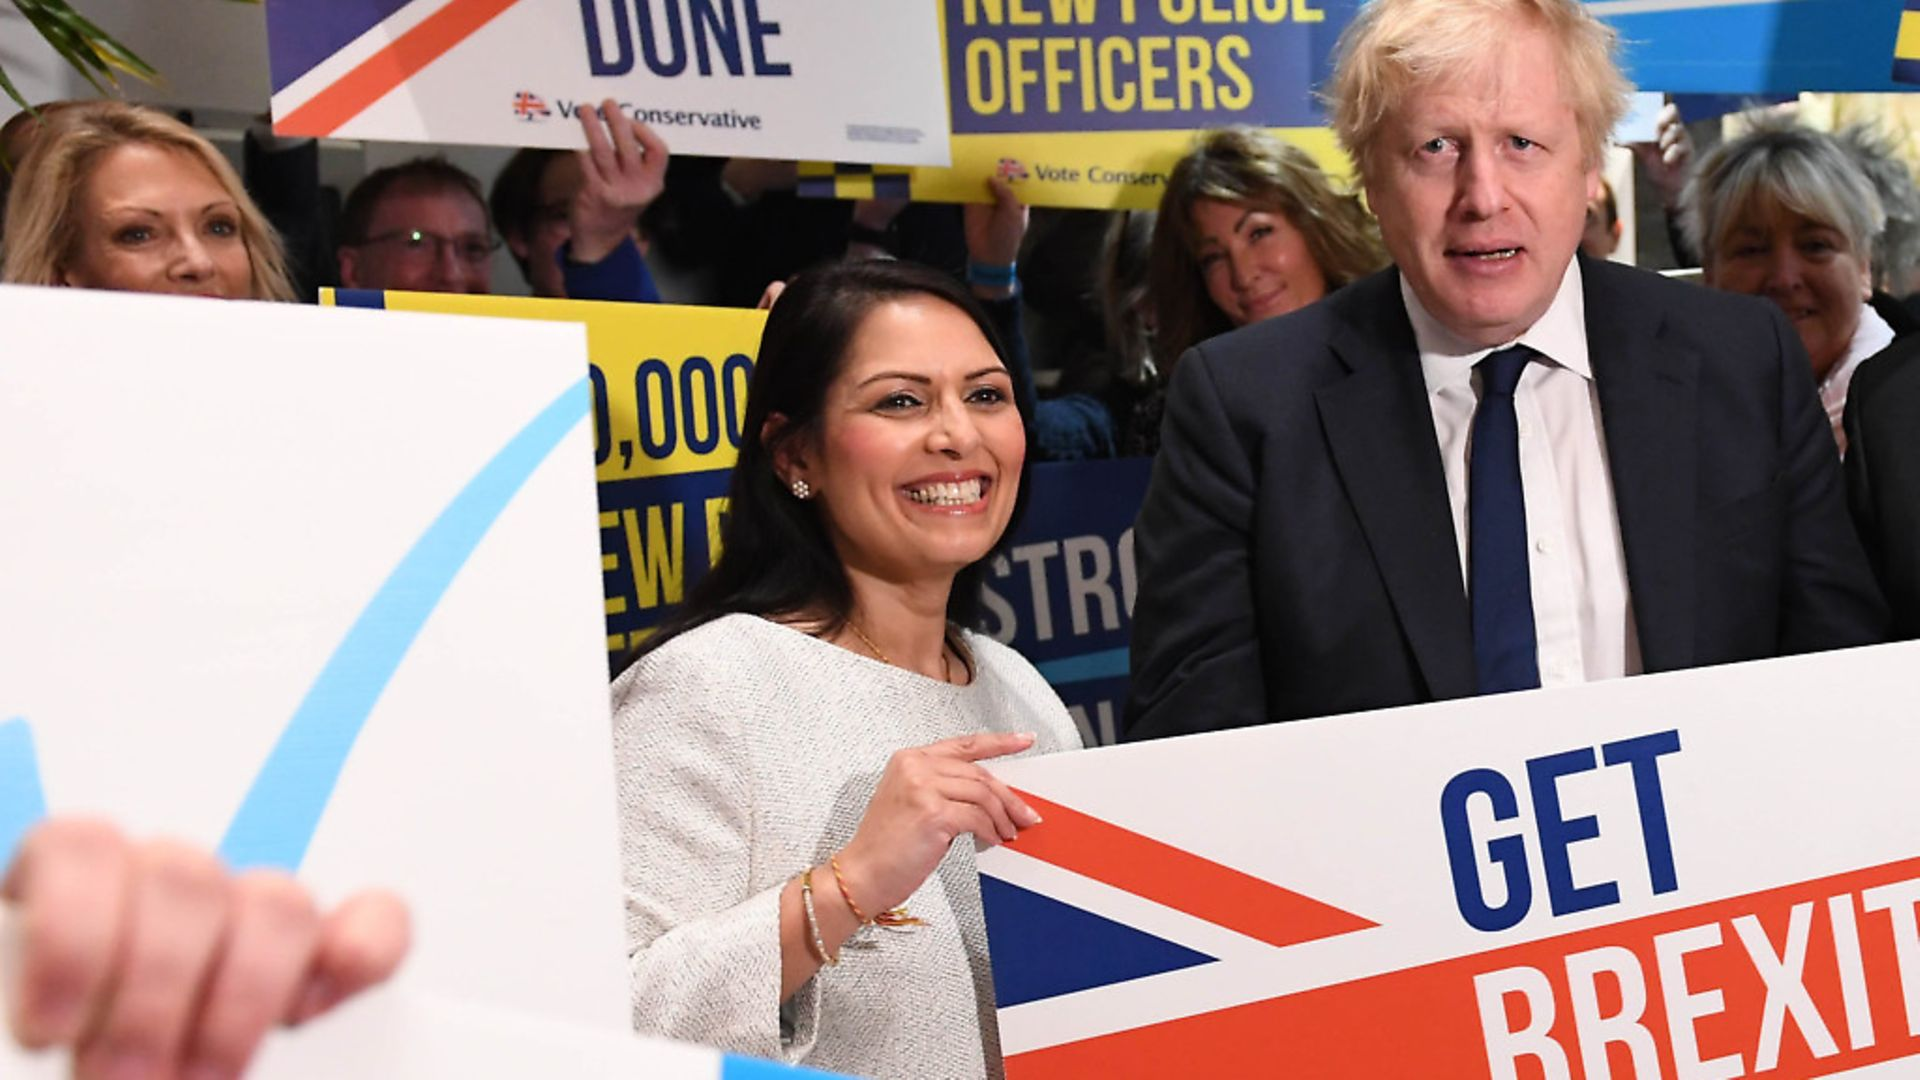 Prime Minister Boris Johnson and Home Secretary Priti Patel during a members rally held at property marketing agency, Think BDW, Colchester, while on the General Election campaign trail. Photograph: Stefan Rousseau/PA. - Credit: PA